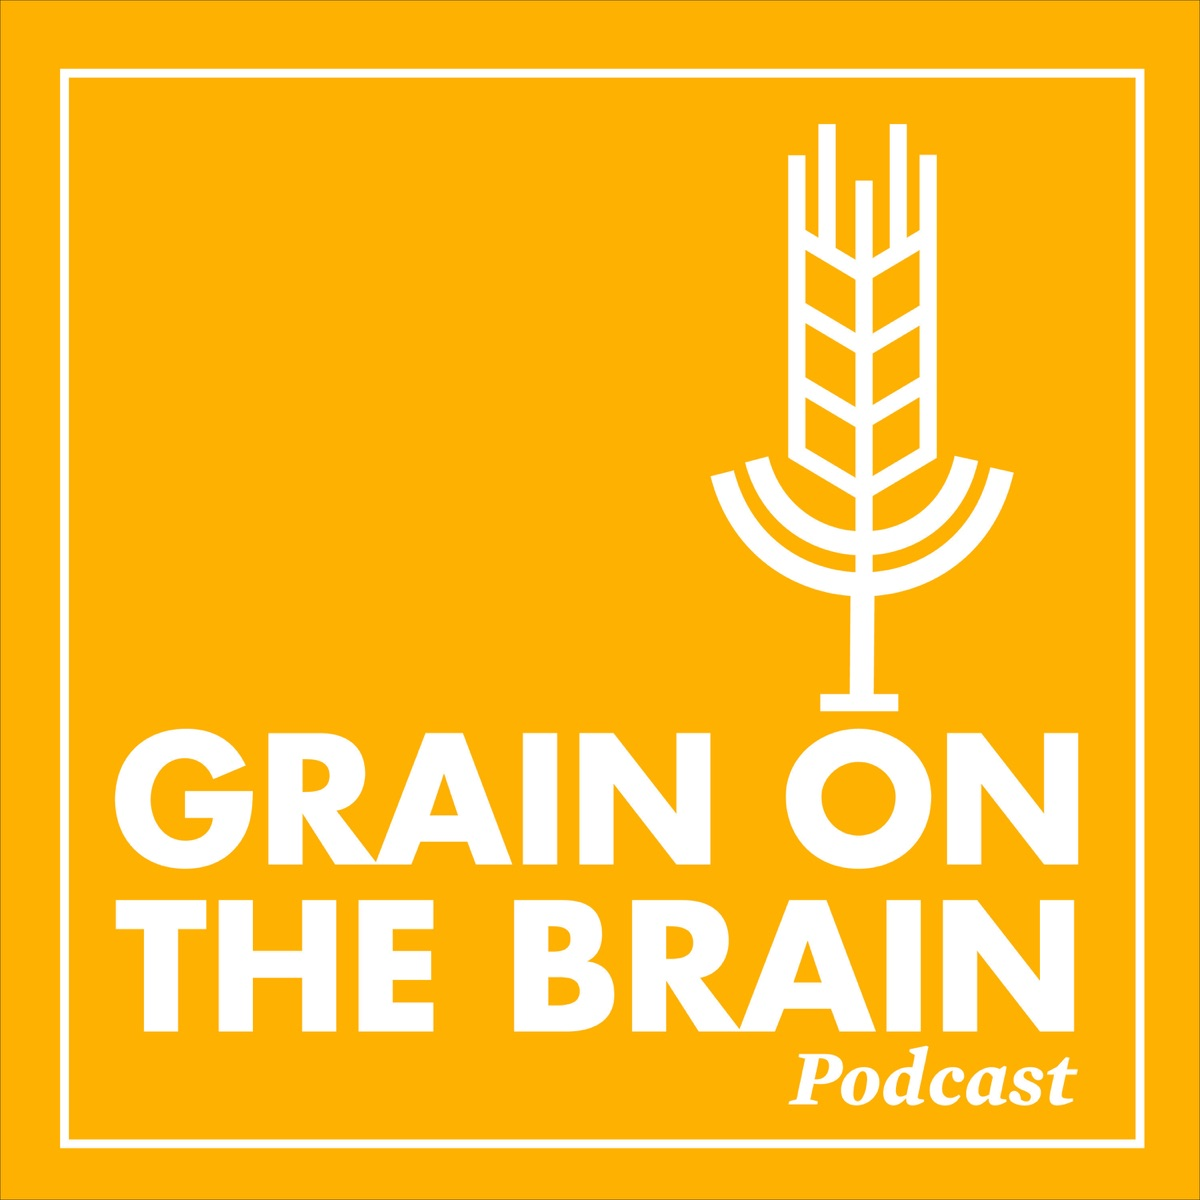 Grain on the Brain